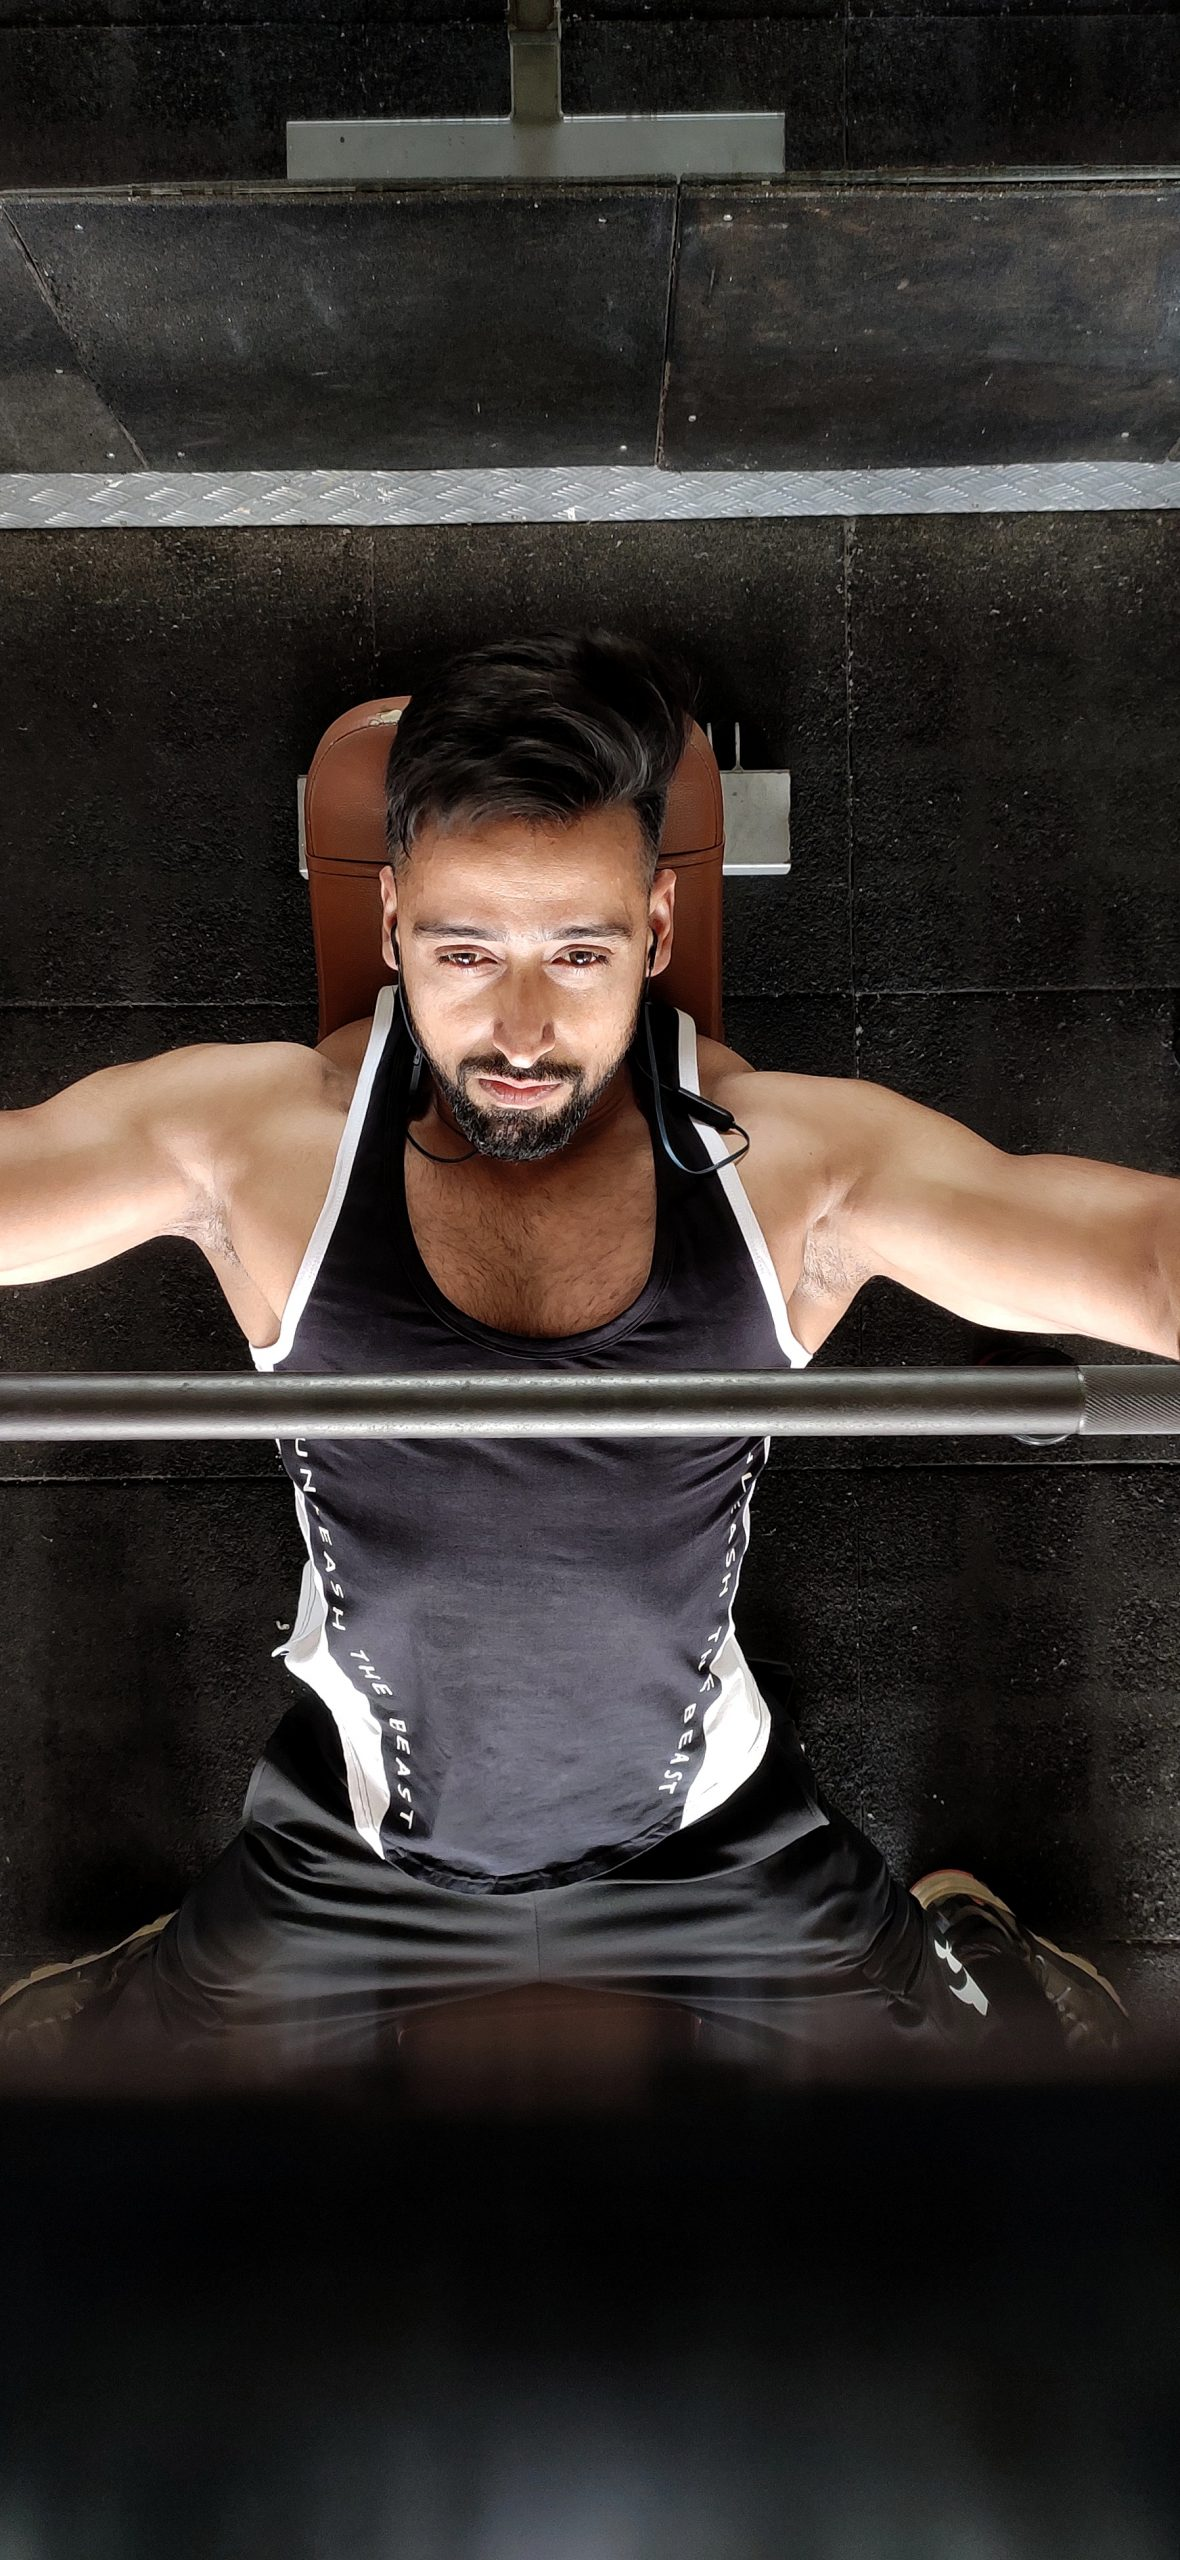 A boy working out in a gym